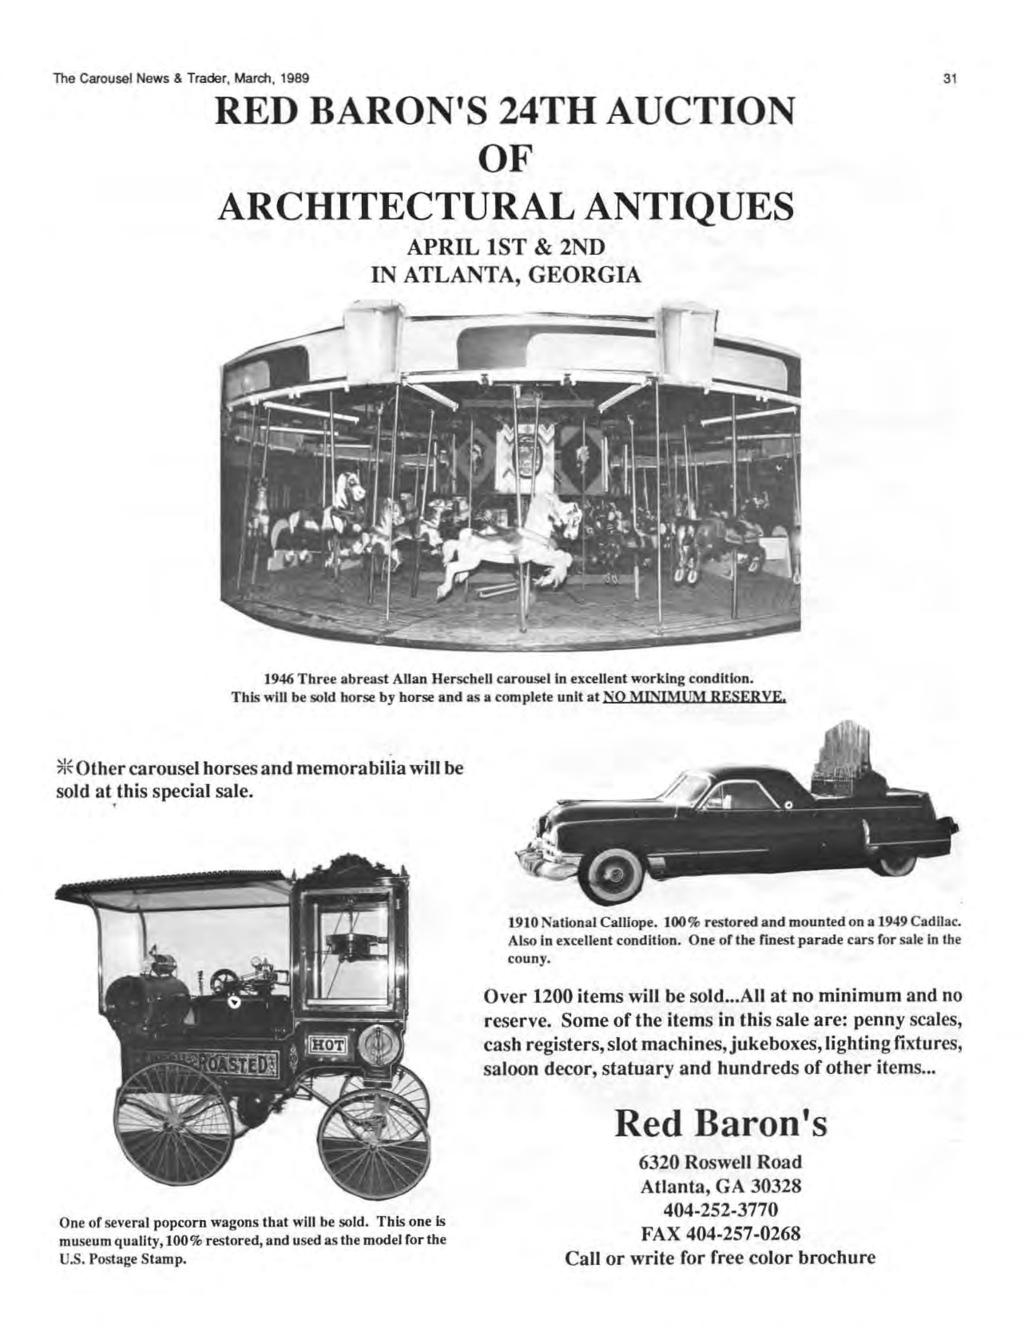 The Carousel News & Trader, March, 1989 31 RED BARON'S 24TH AUCTION OF ARCHITECTURAL ANTIQUES APRIL 1ST & 2ND IN ATLANTA, GEORGIA 1946 Three abreast Allan HerscheiJ carousel in excellent working